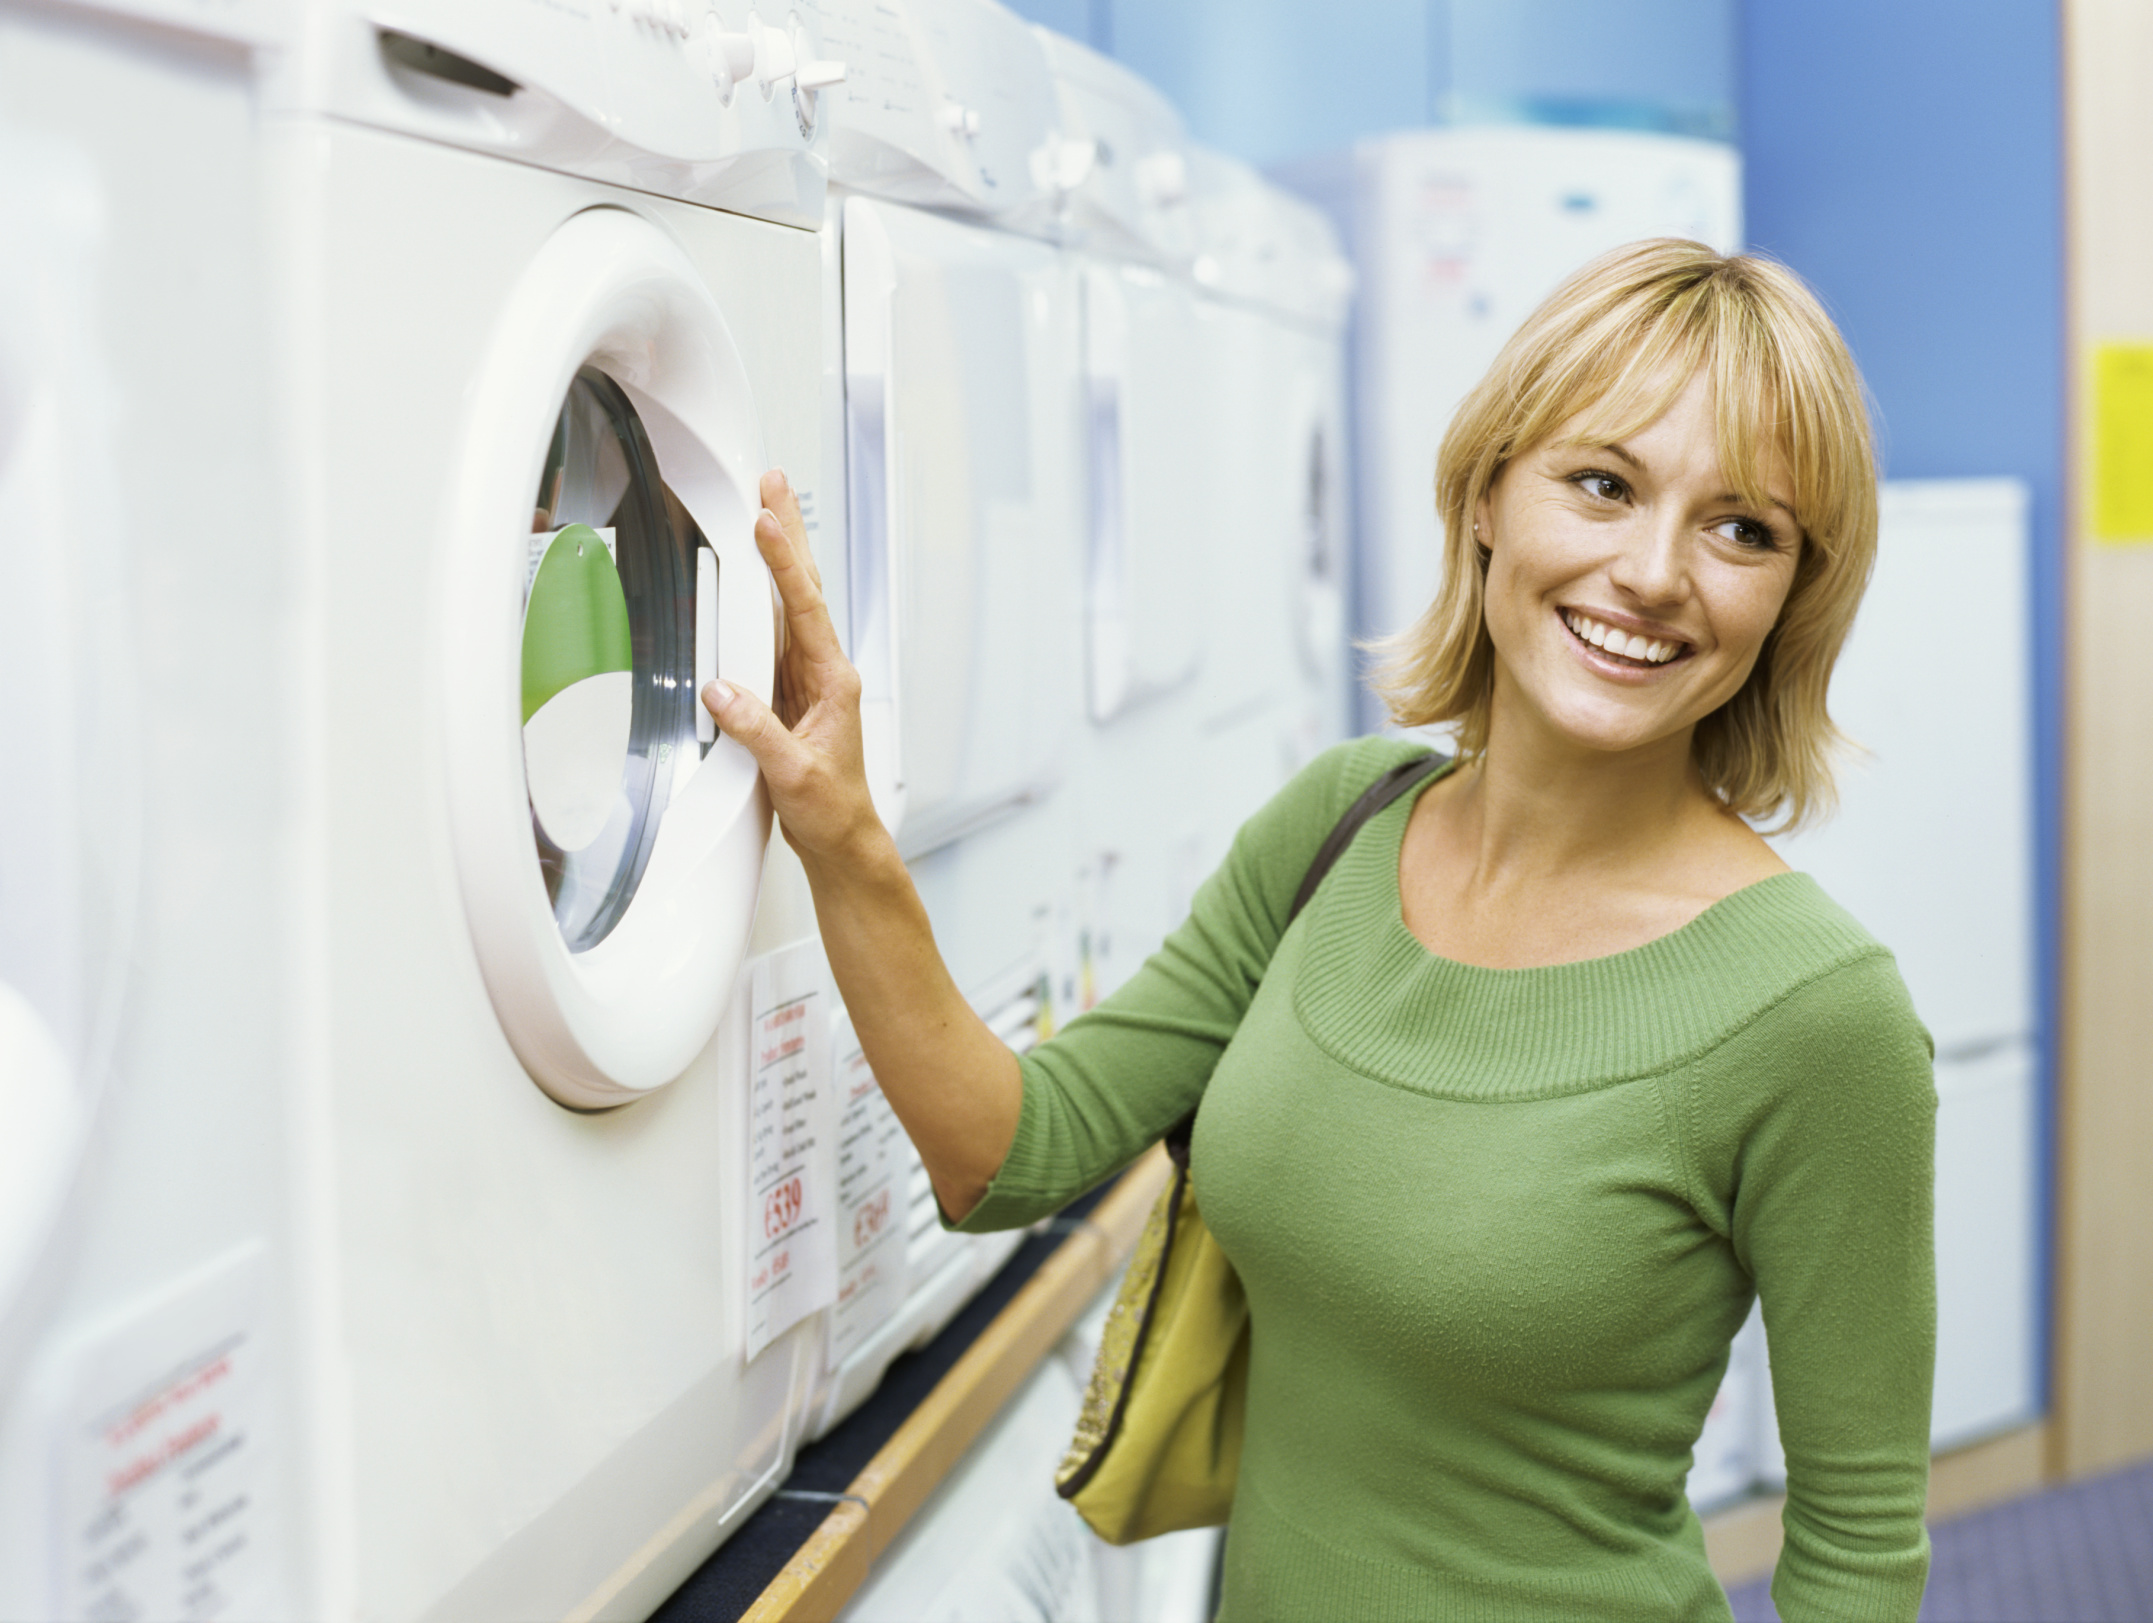 Where Can I Buy Appliances It Pays To Buy New When Shopping For Appliances Aham Consumer Blog